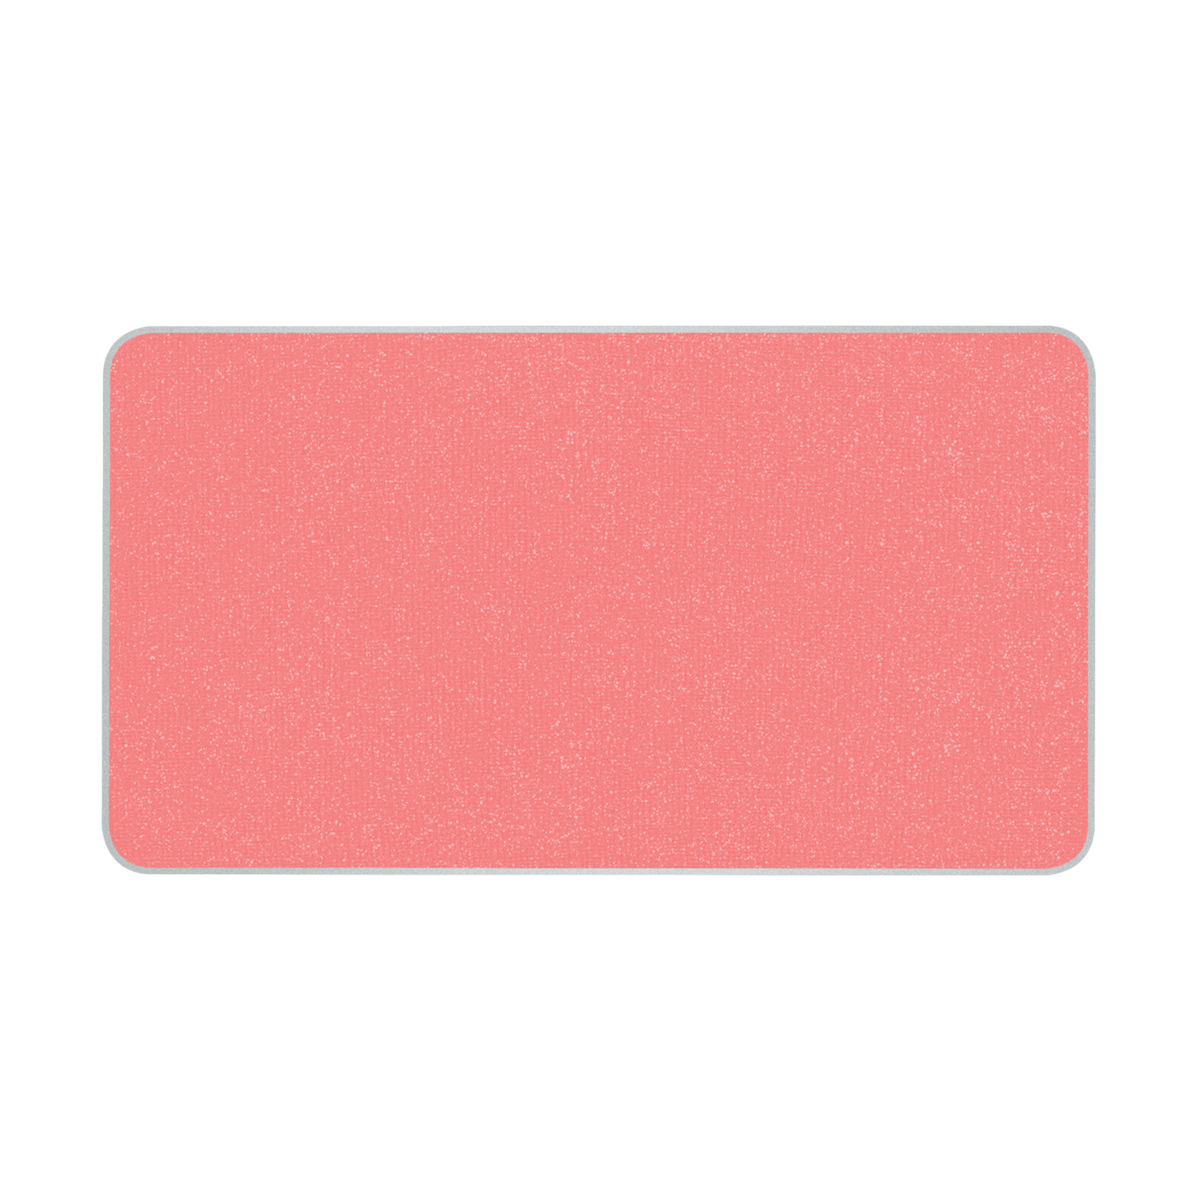 B210 Shimmery Warm Pink